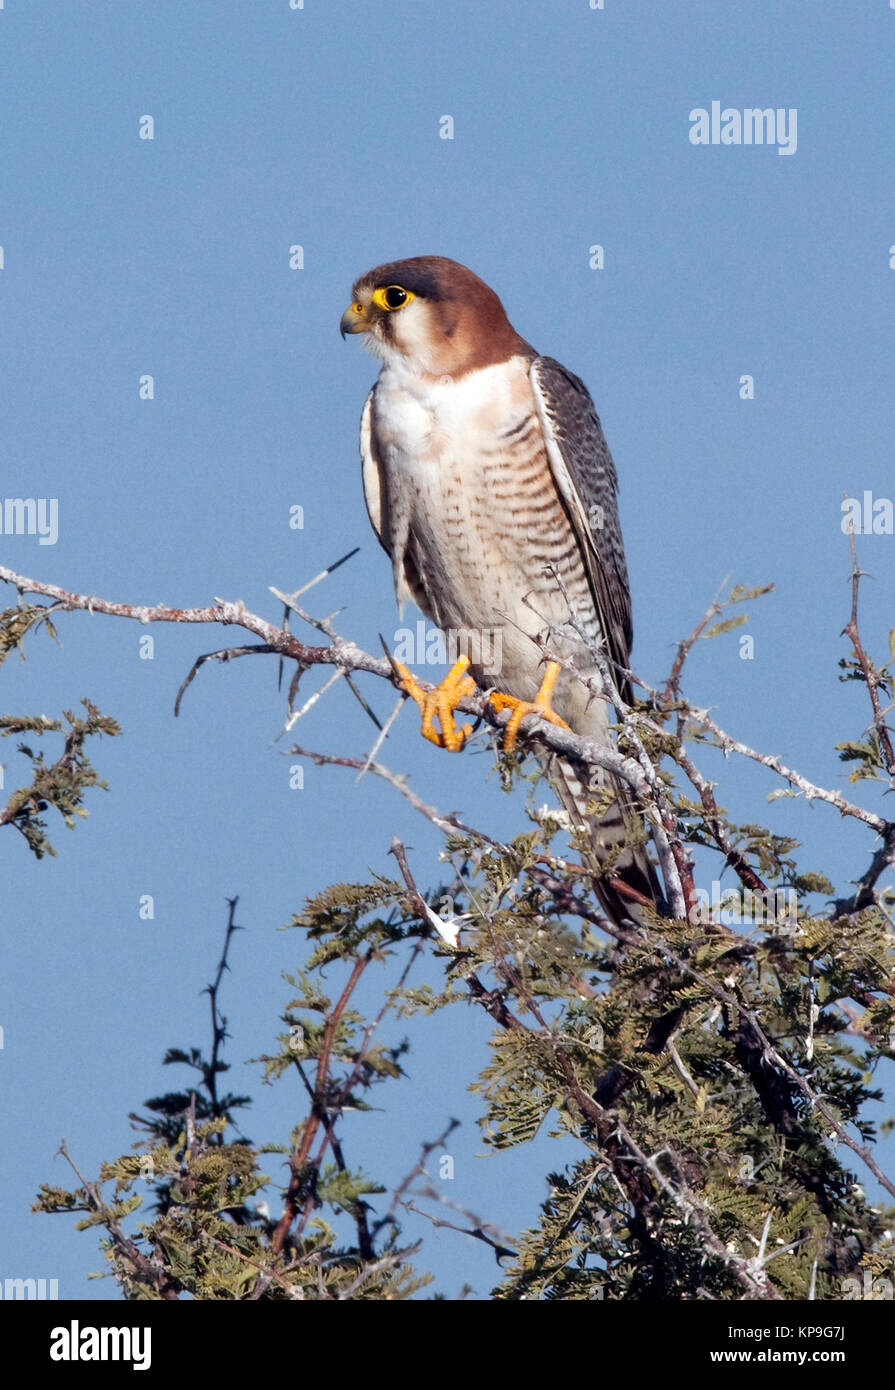 A young African Goshawk (Accipiter tachiro) in the Chobe River region of Botswana. - Stock Image